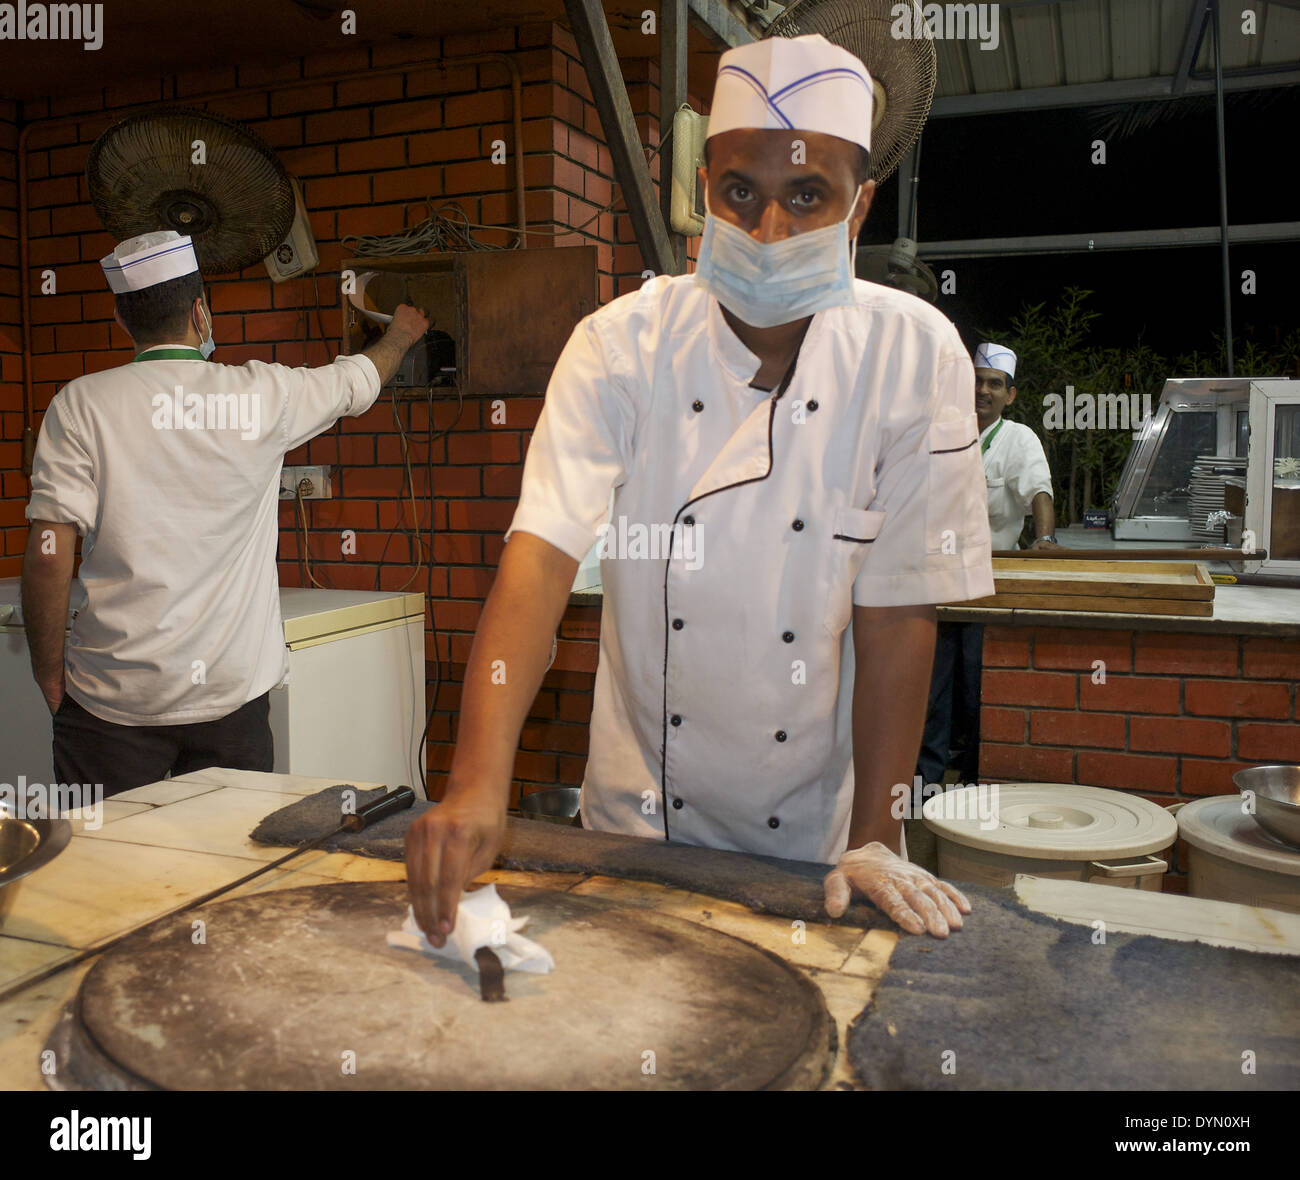 Restaurant worker in Jeddah, Saudi Arabia wears a mask to prevent the Middle East Syndrome - Stock Image